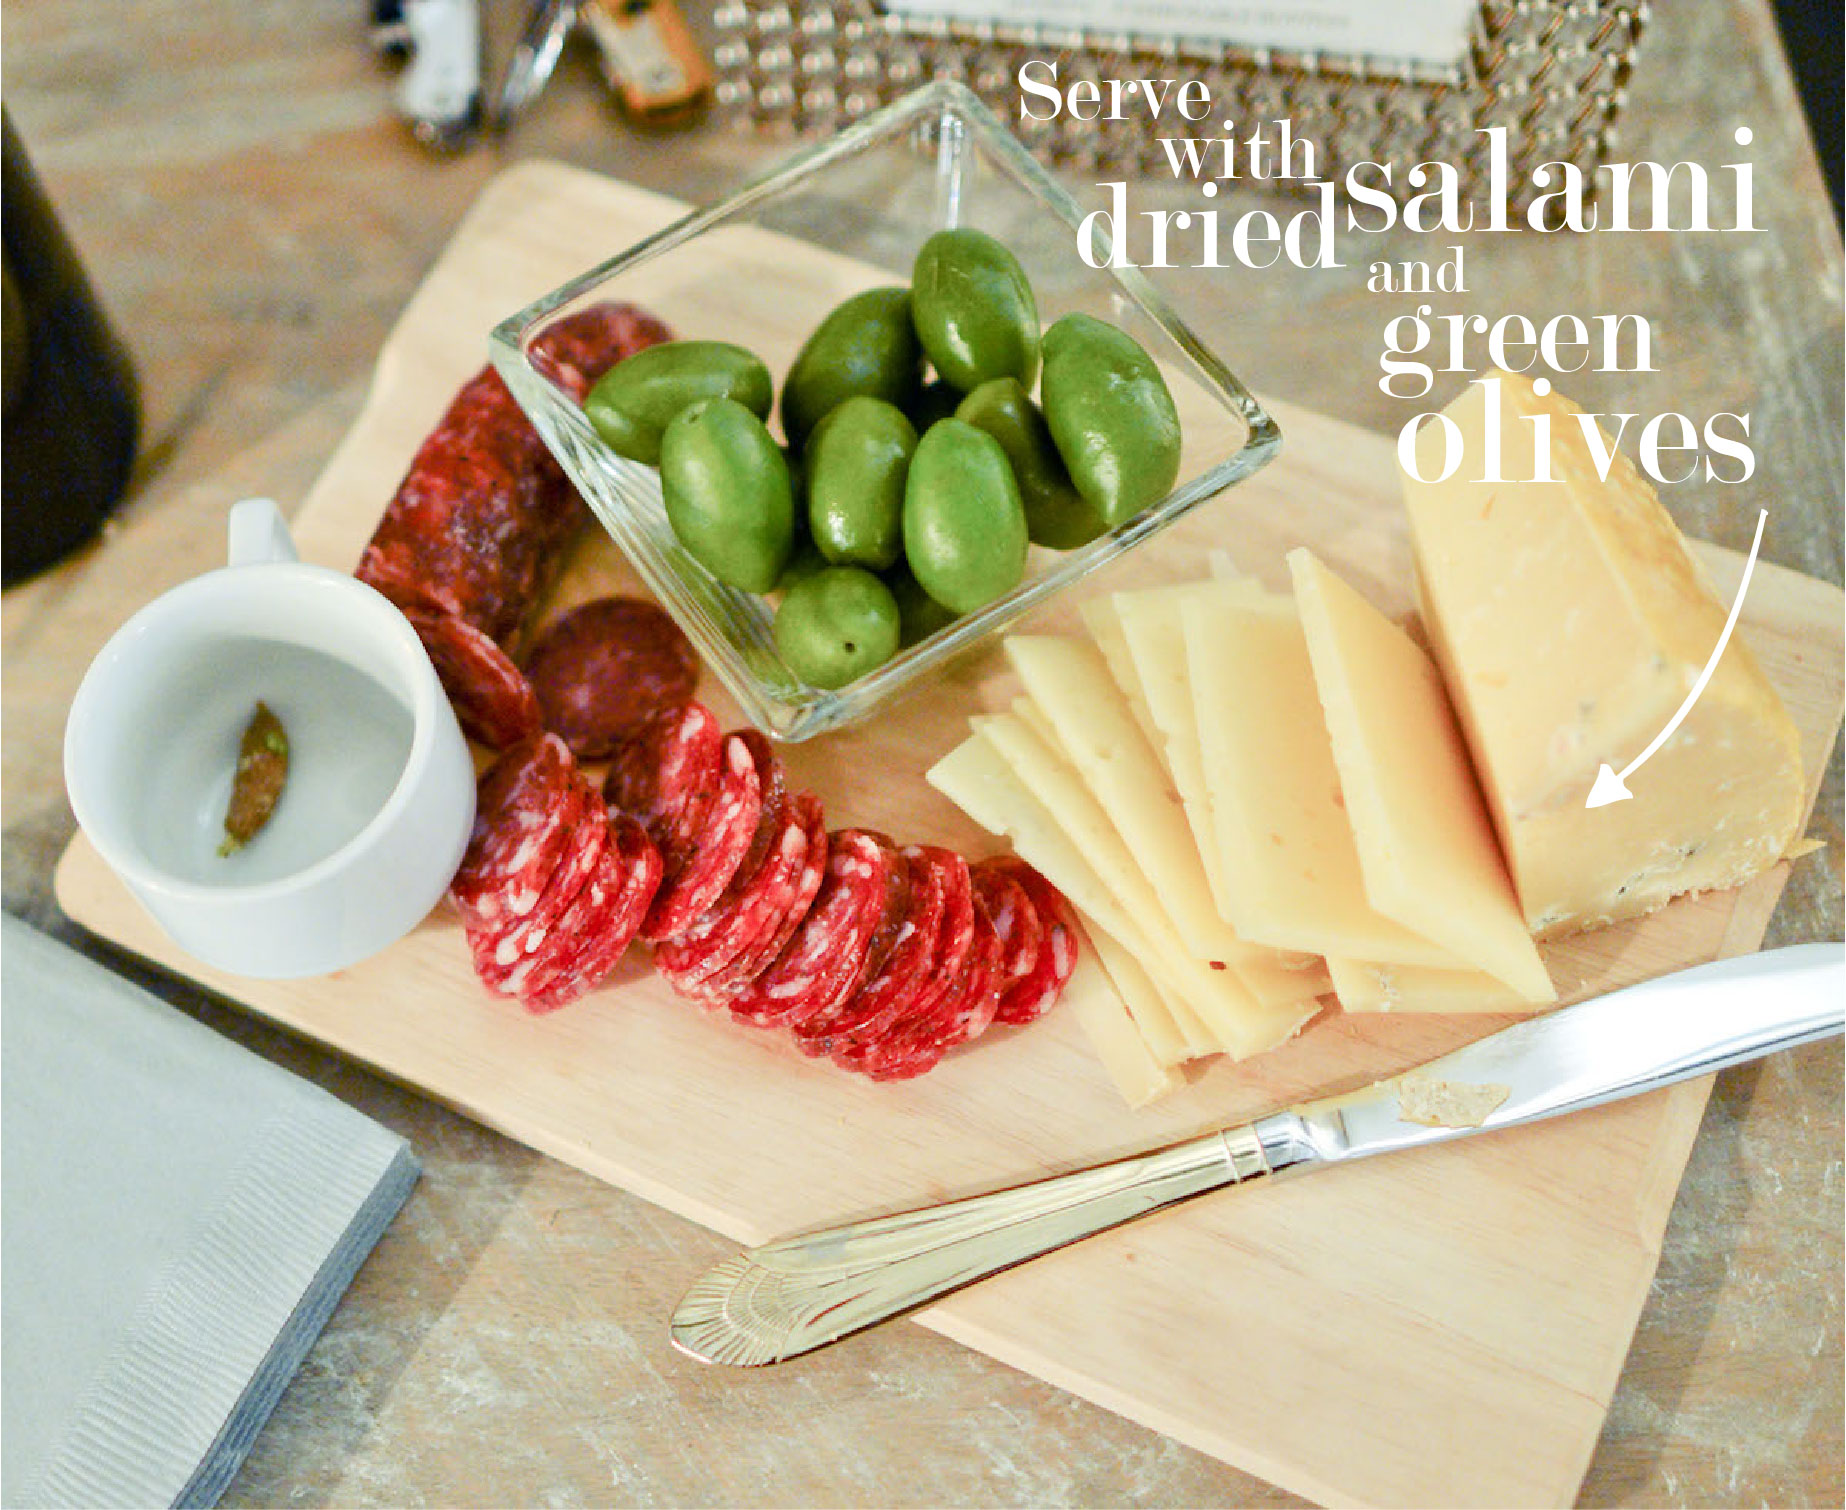 Cheese Plate with Dried Salami and Olives // FashionableHostess.com